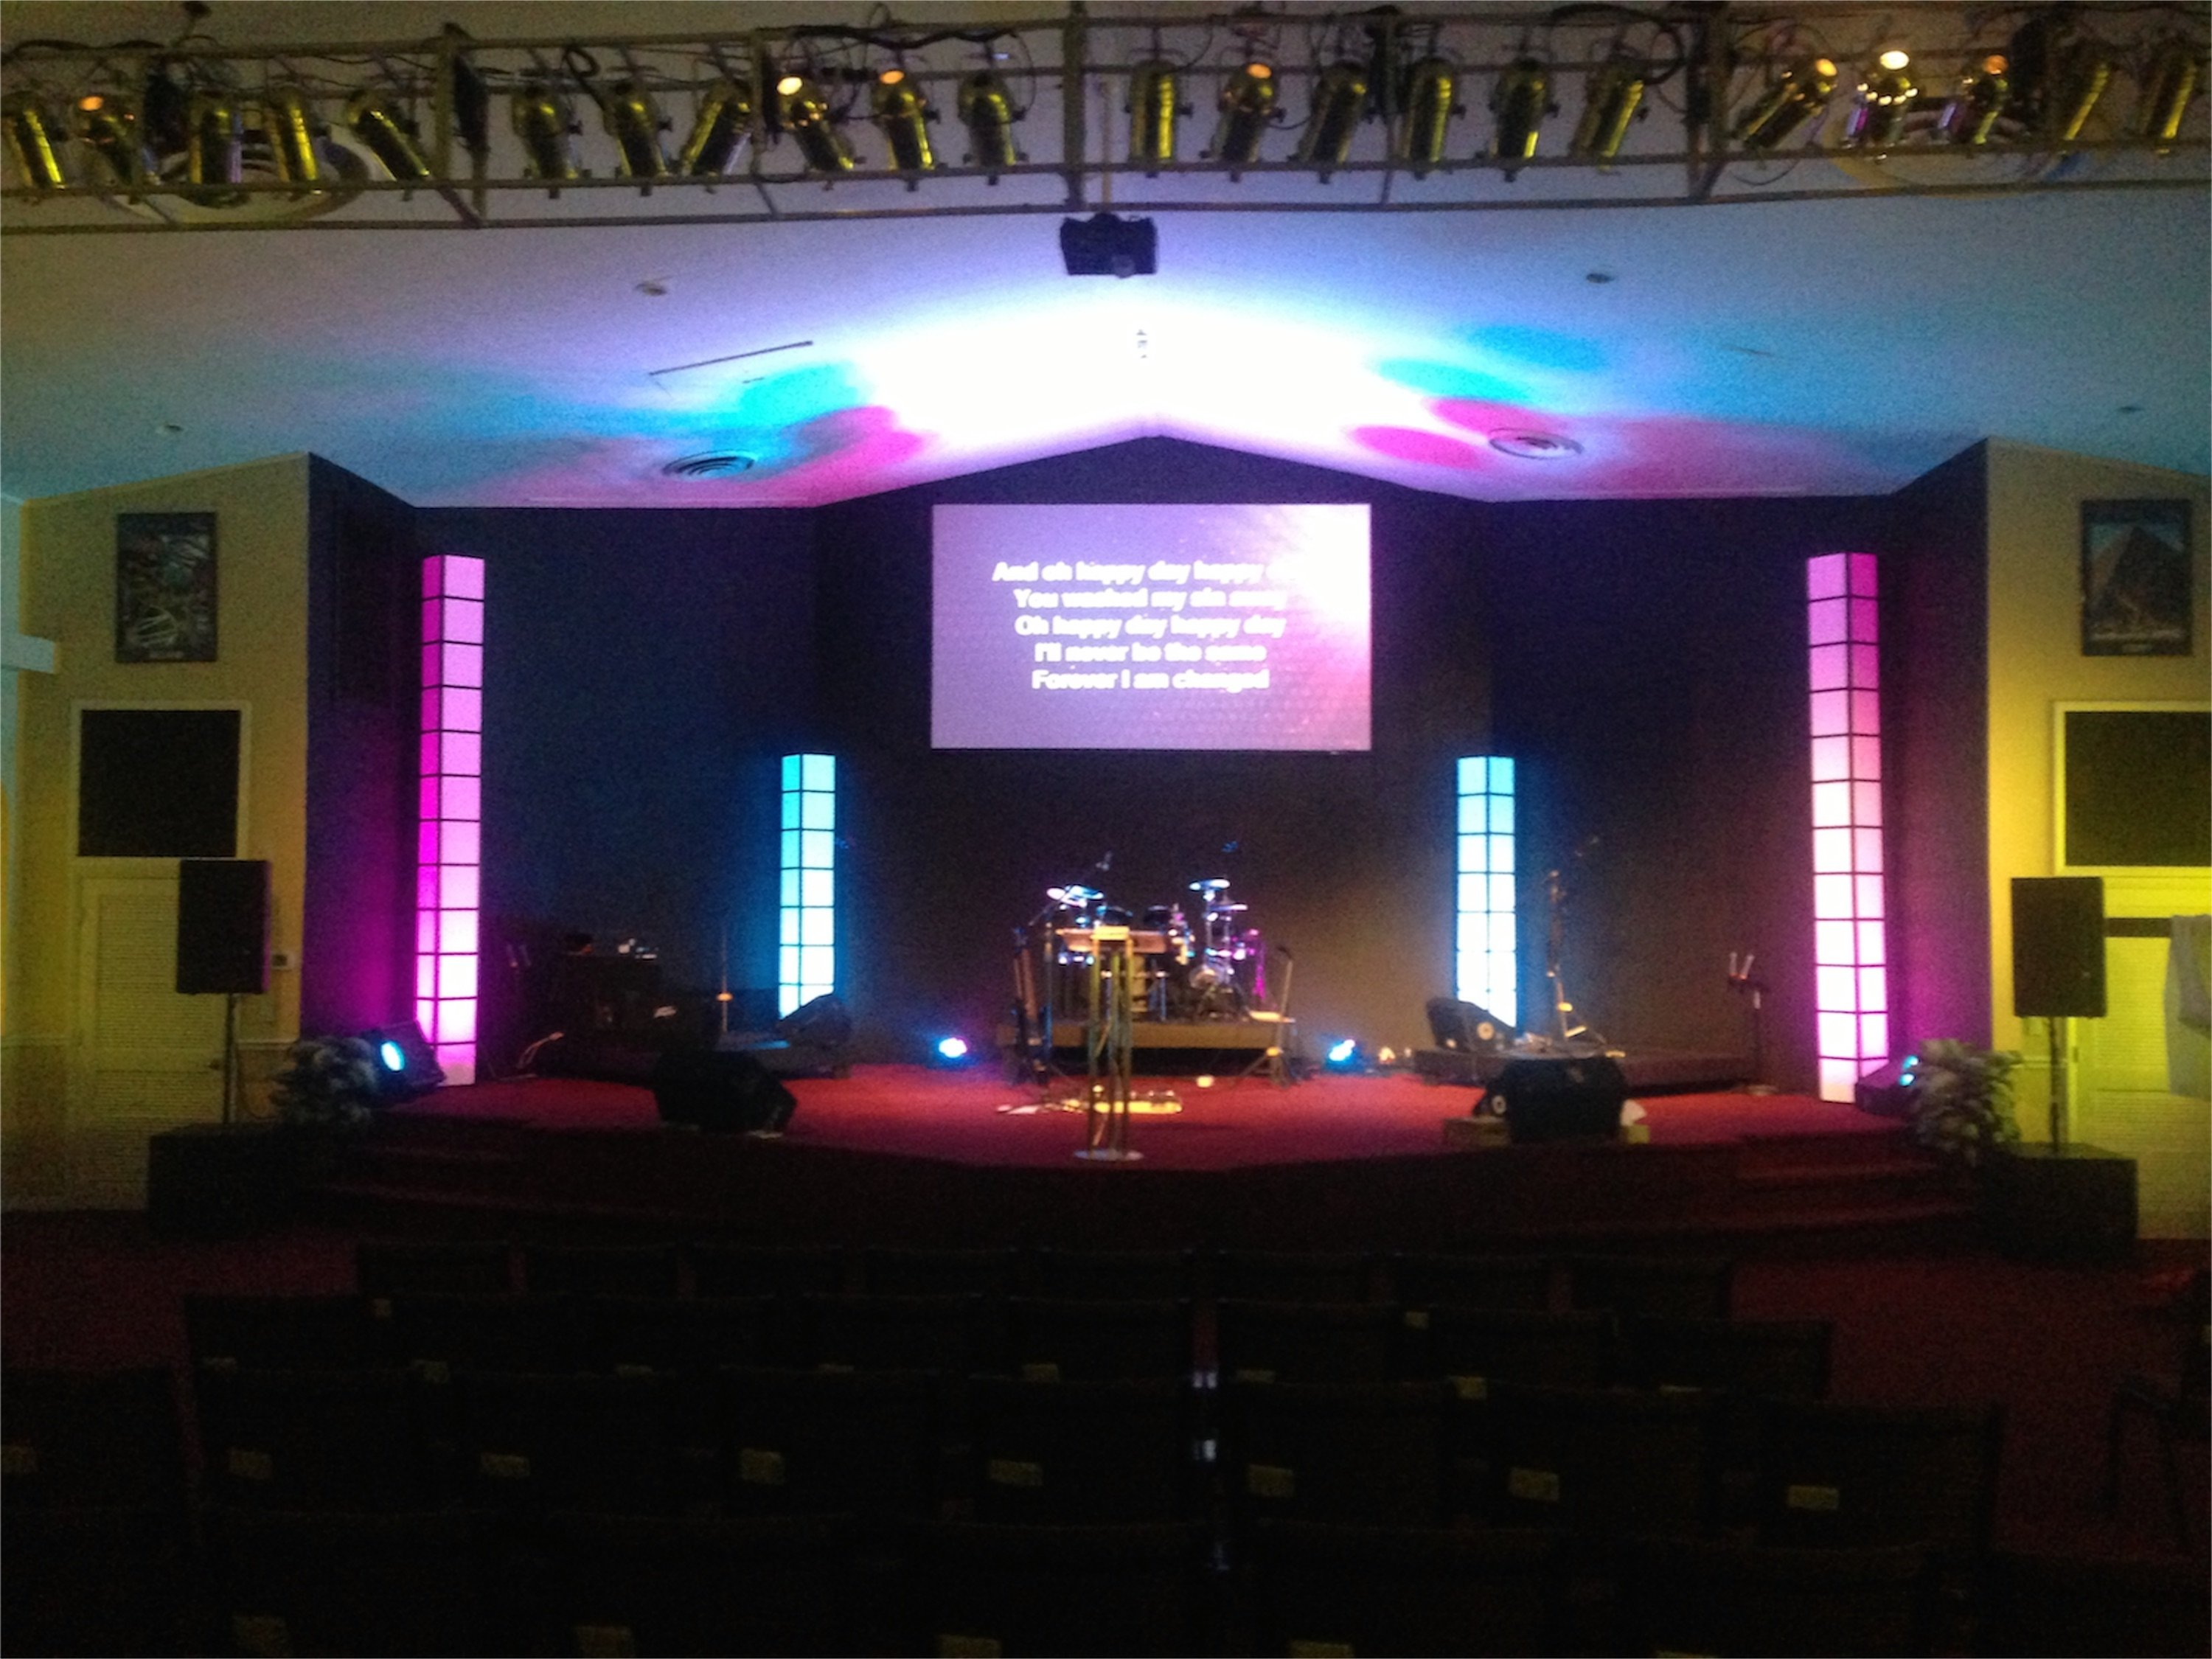 10 Unique Small Church Stage Design Ideas light towers plus church stage design ideas 2020